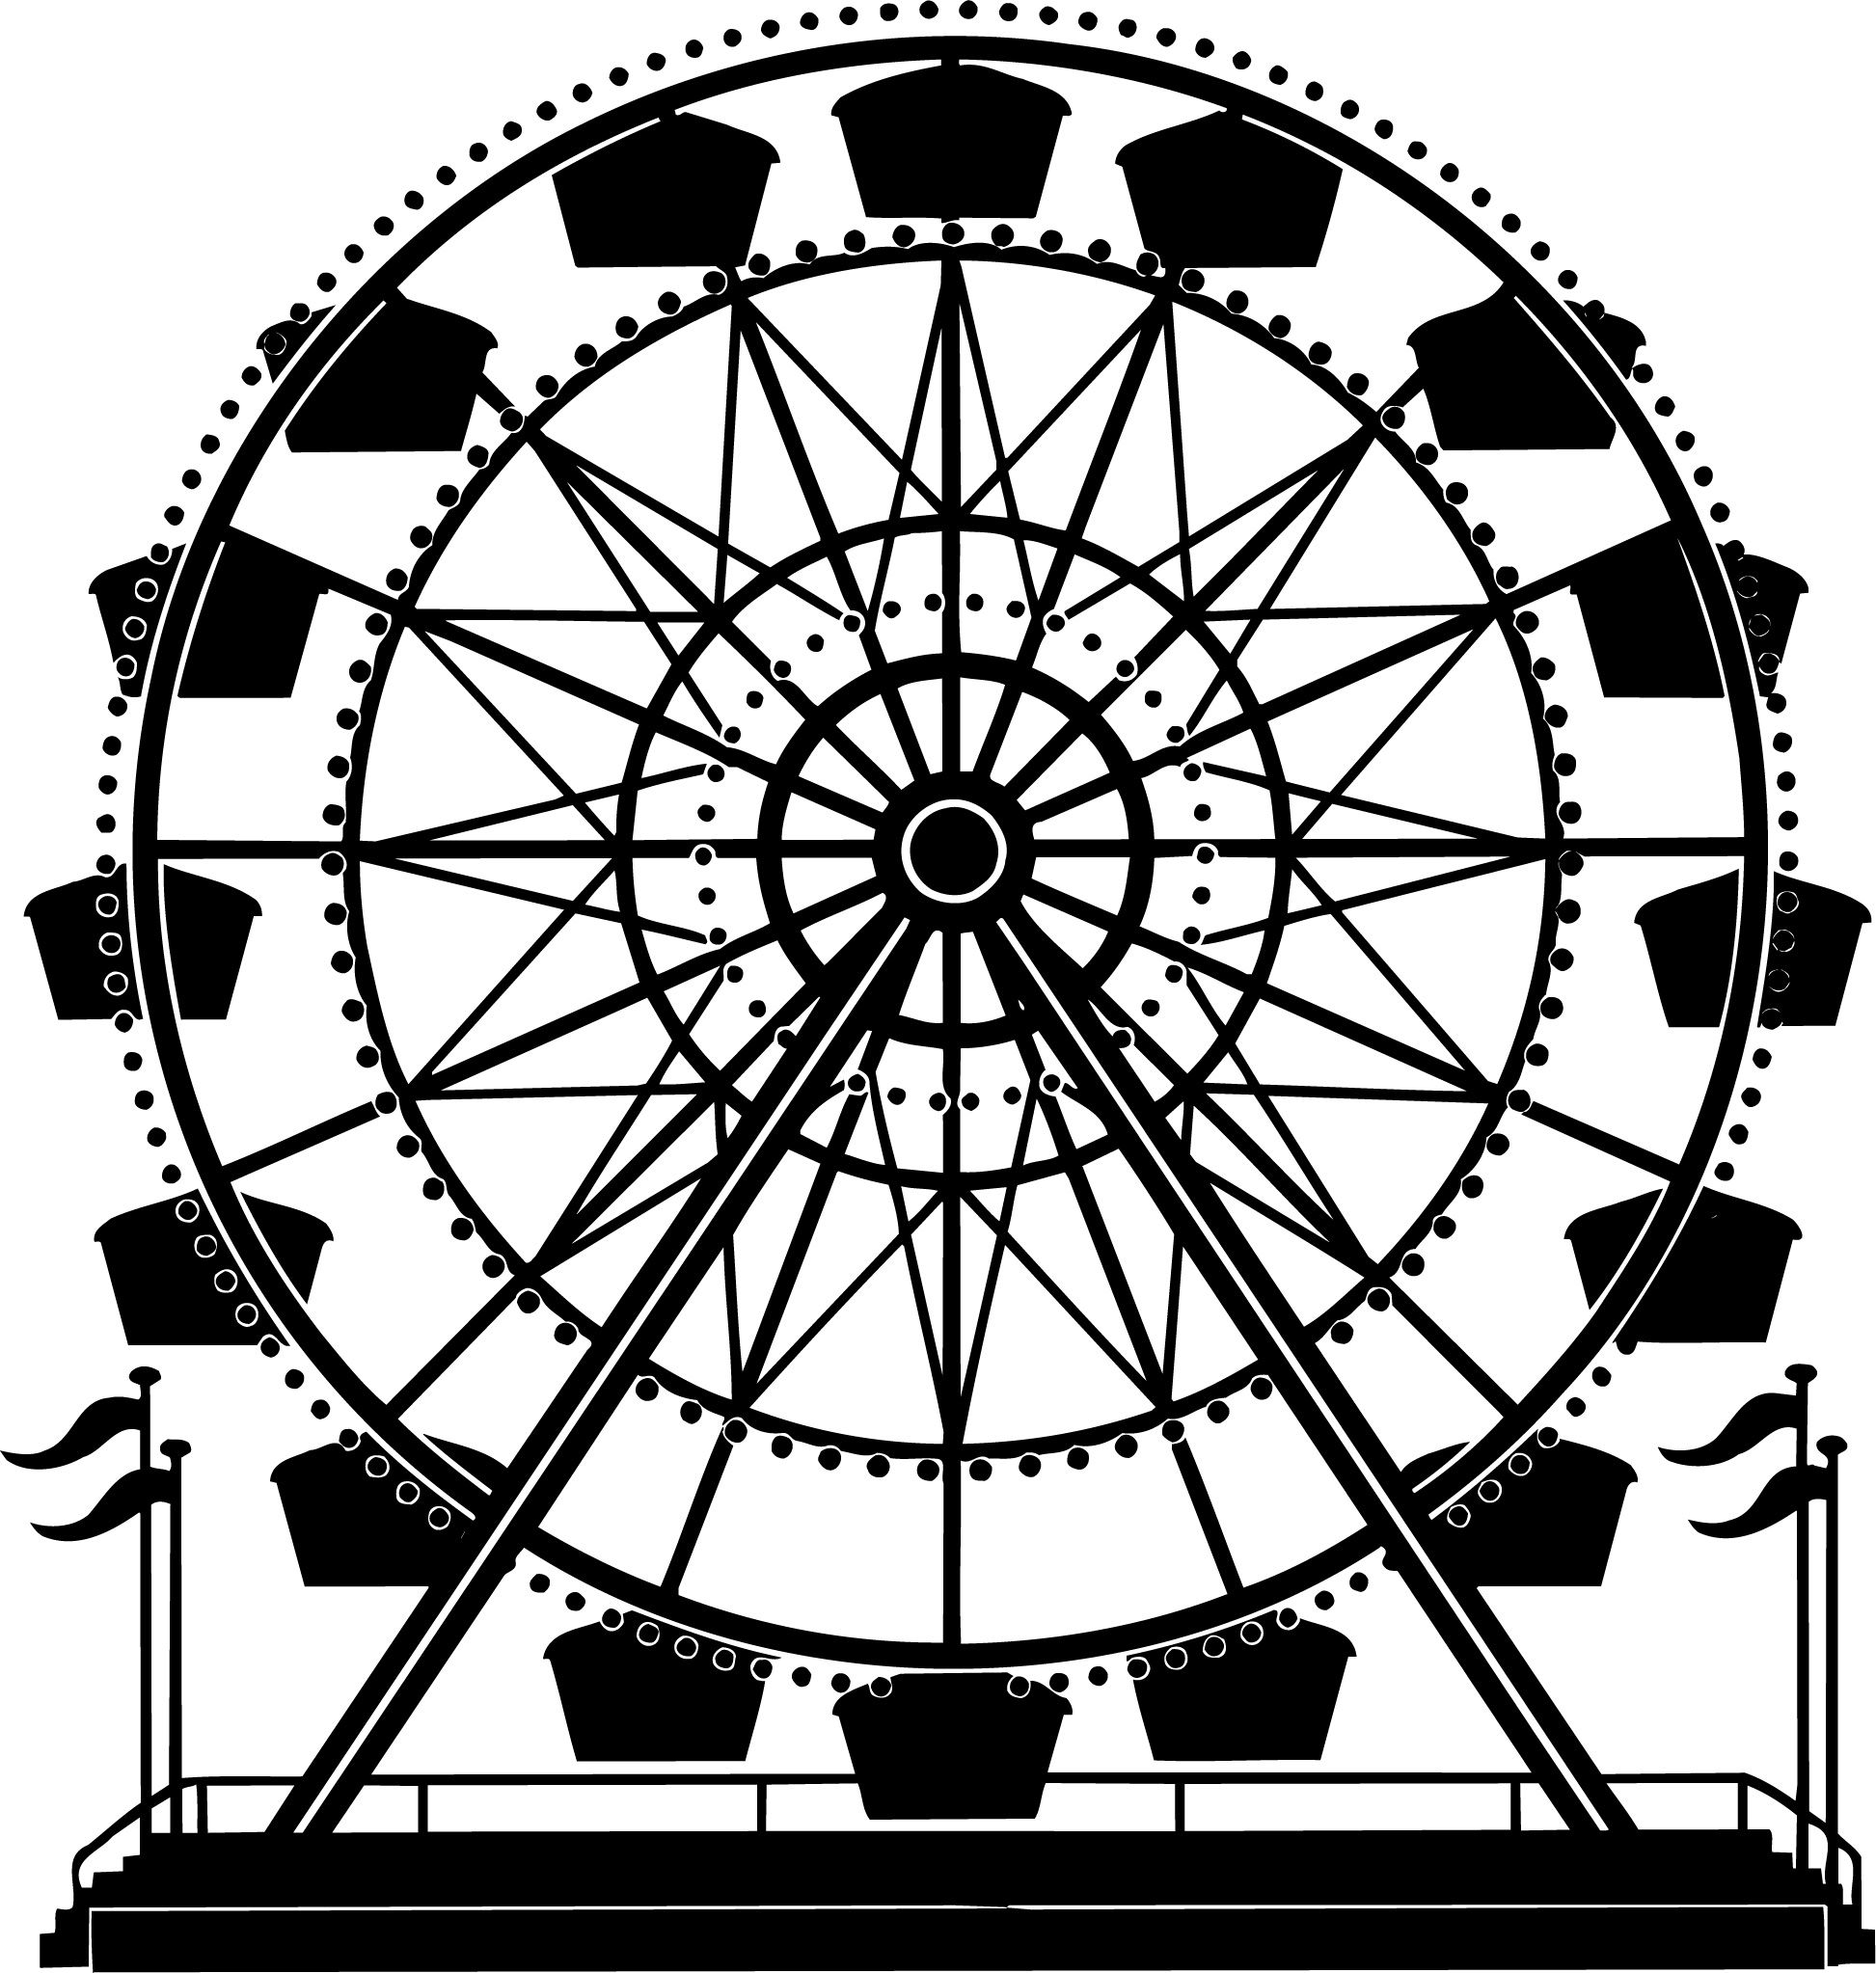 Ferris Wheel Vector Cartoon Art Designs Compilation We Are Currently Seeking Graphic Designers And Sales People To Join Our Team Http Keithhoffart Weebly Com